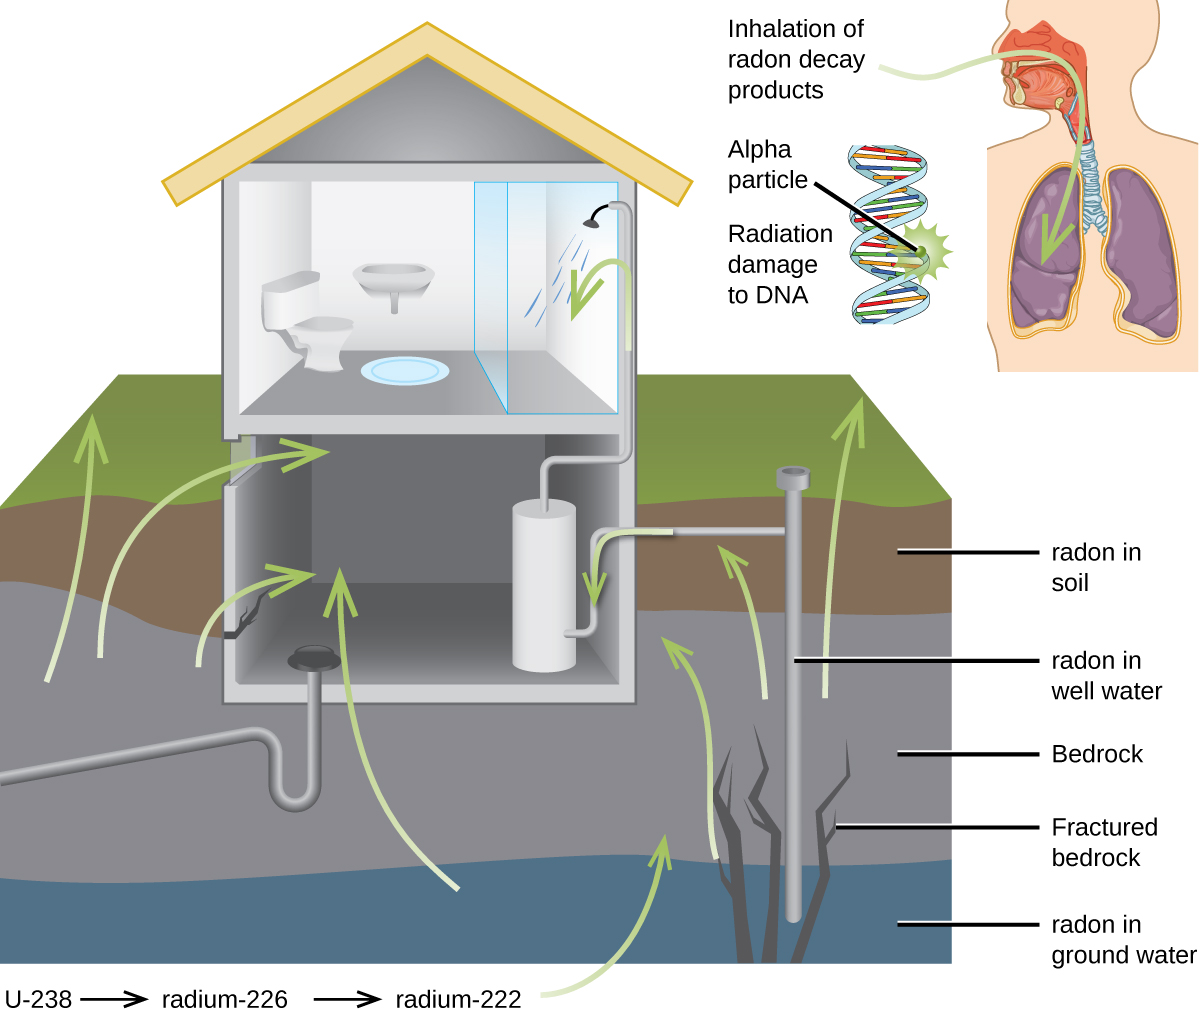 """A cut-away image of the side of a house and four layers of the ground it rests on is shown, as well as a second cut-away image of a person's head and chest cavity. The house is shown with a restroom on the second floor and a basement with a water heater as the first floor. Green arrows lead from the lowest ground layer, labeled """"radon in ground water,"""" from the third ground layer, labeled """"Bedrock"""" and """"Fractured bedrock,"""" from the second layer, labeled """"radon in well water,"""" and from the top layer, labeled """"radon in soil to the inside of the basement area. In the smaller image of the torso, a green arrow is shown to enter the person's nasal passage and travel to the lungs. This is labeled """"Inhalation of radon decay products."""" A small coiled, helical structure next to the torso is labeled """"alpha particle"""" on one section where it has a starburst pattern and """"Radiation damage to D N A"""" on another segment."""